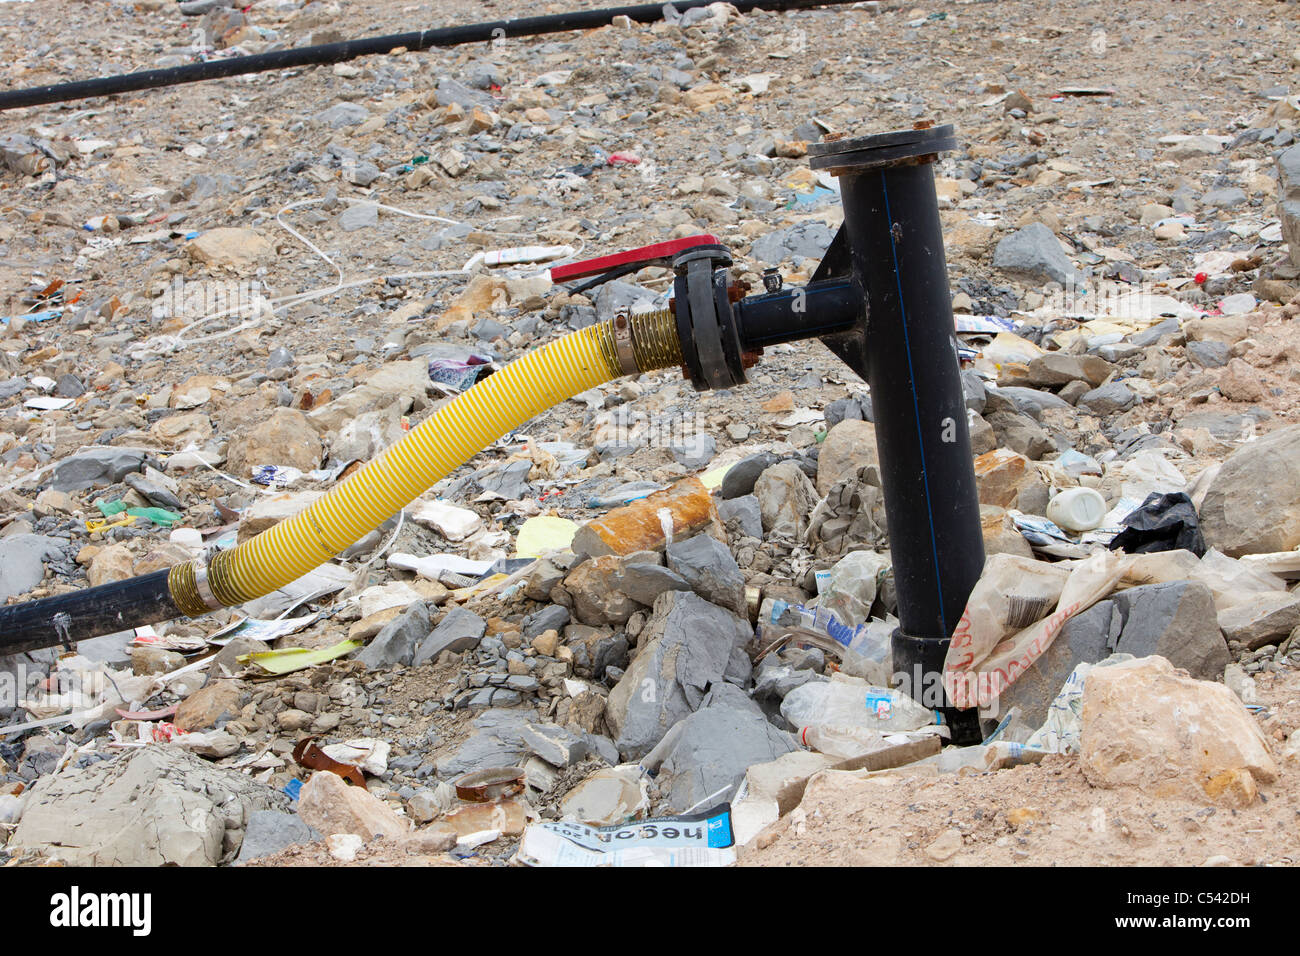 Methane being tapped off from a landfill site in Alicante, Costa Blanca, Murcia, Spain. - Stock Image